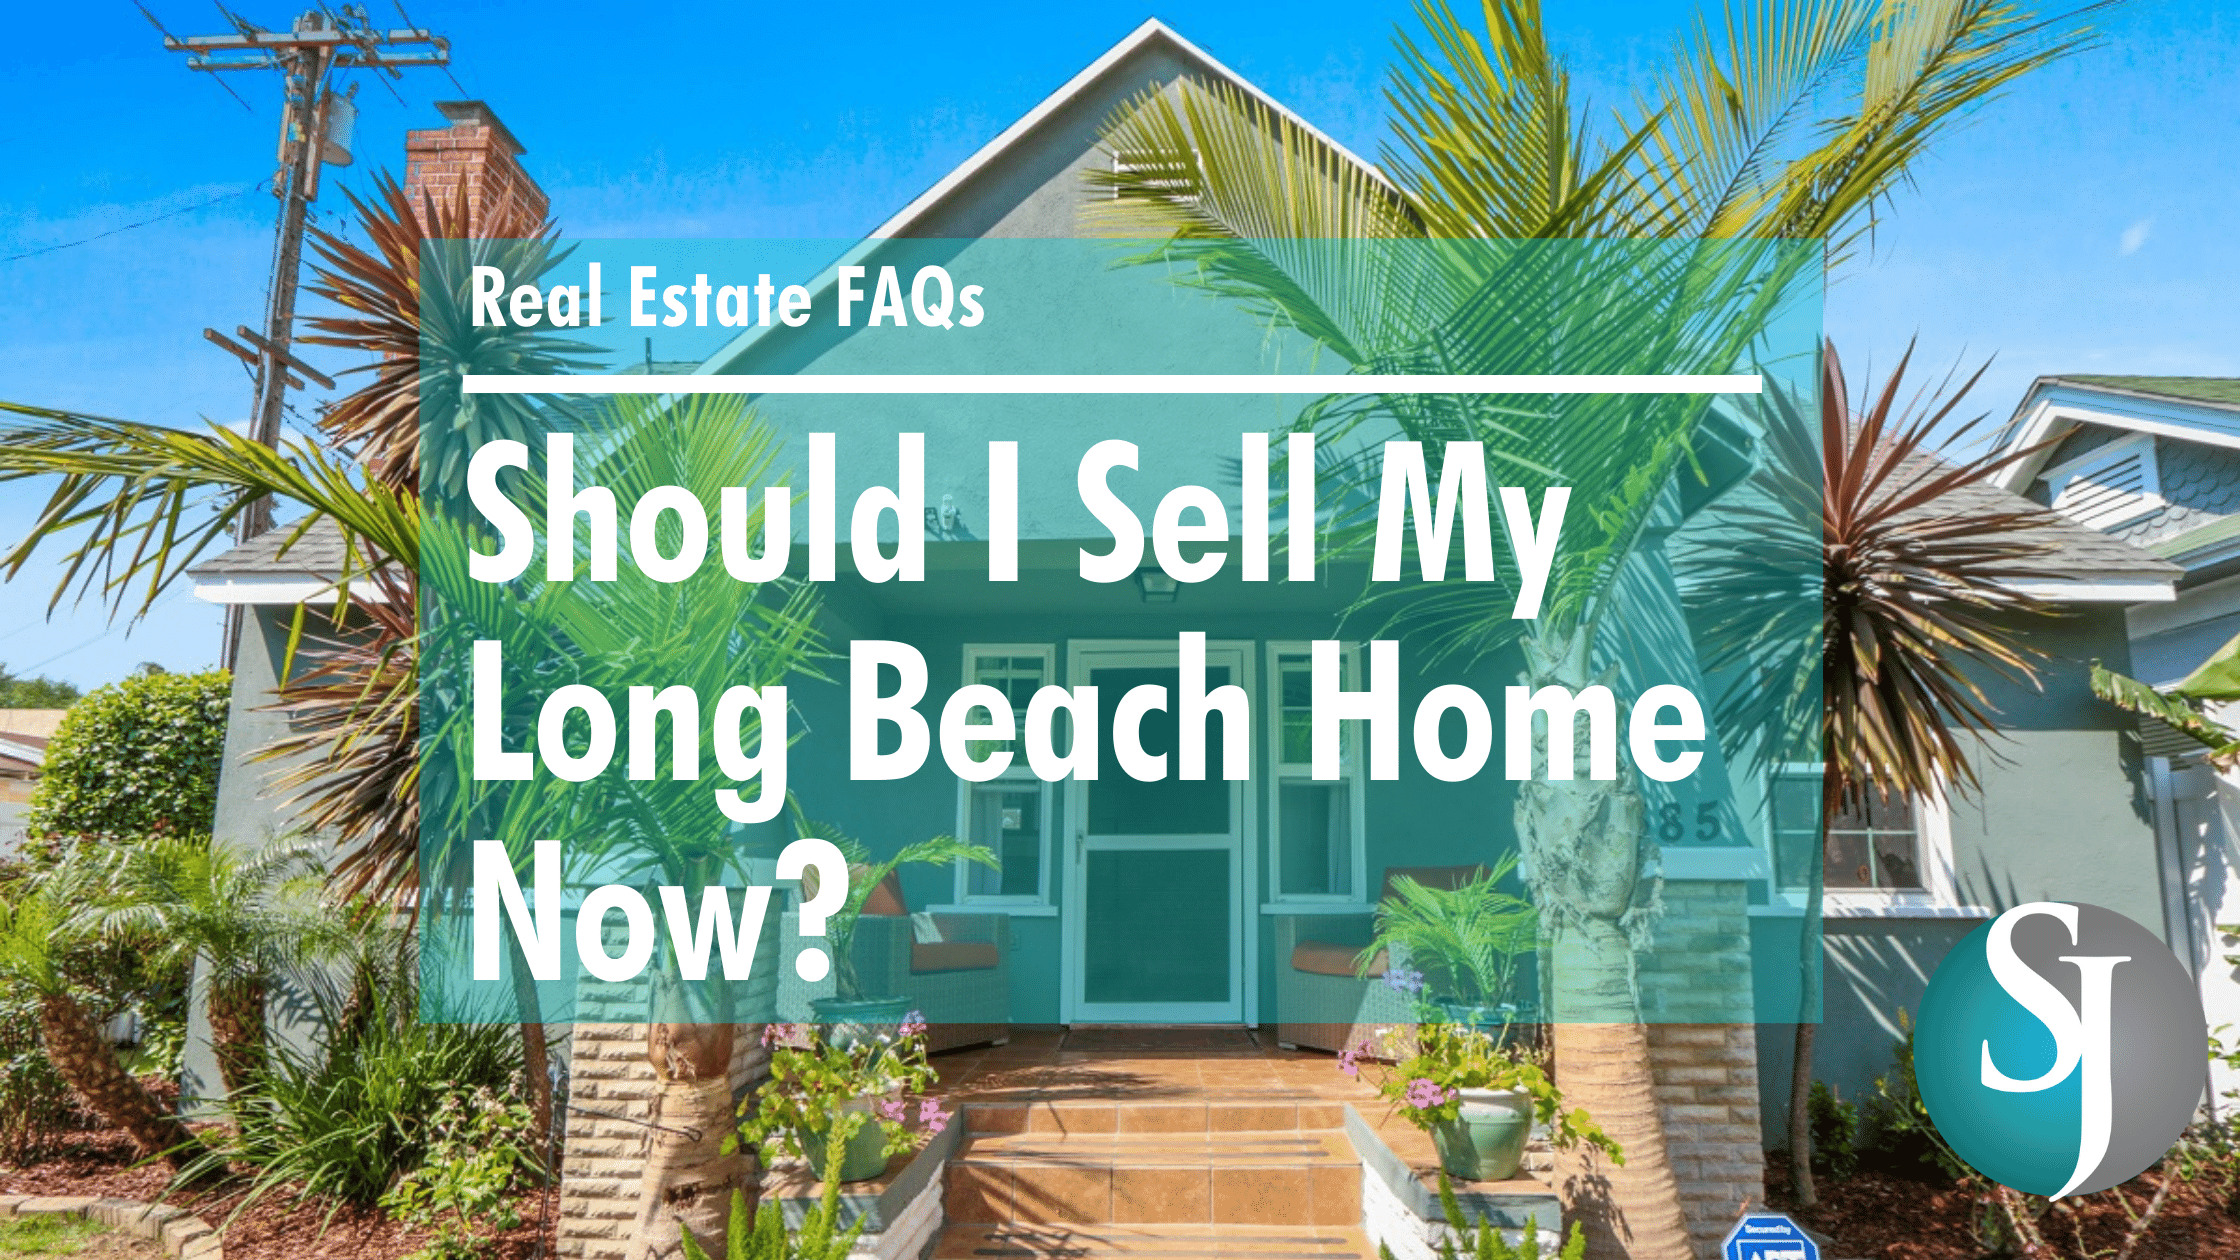 Sell Long Beach Home Now